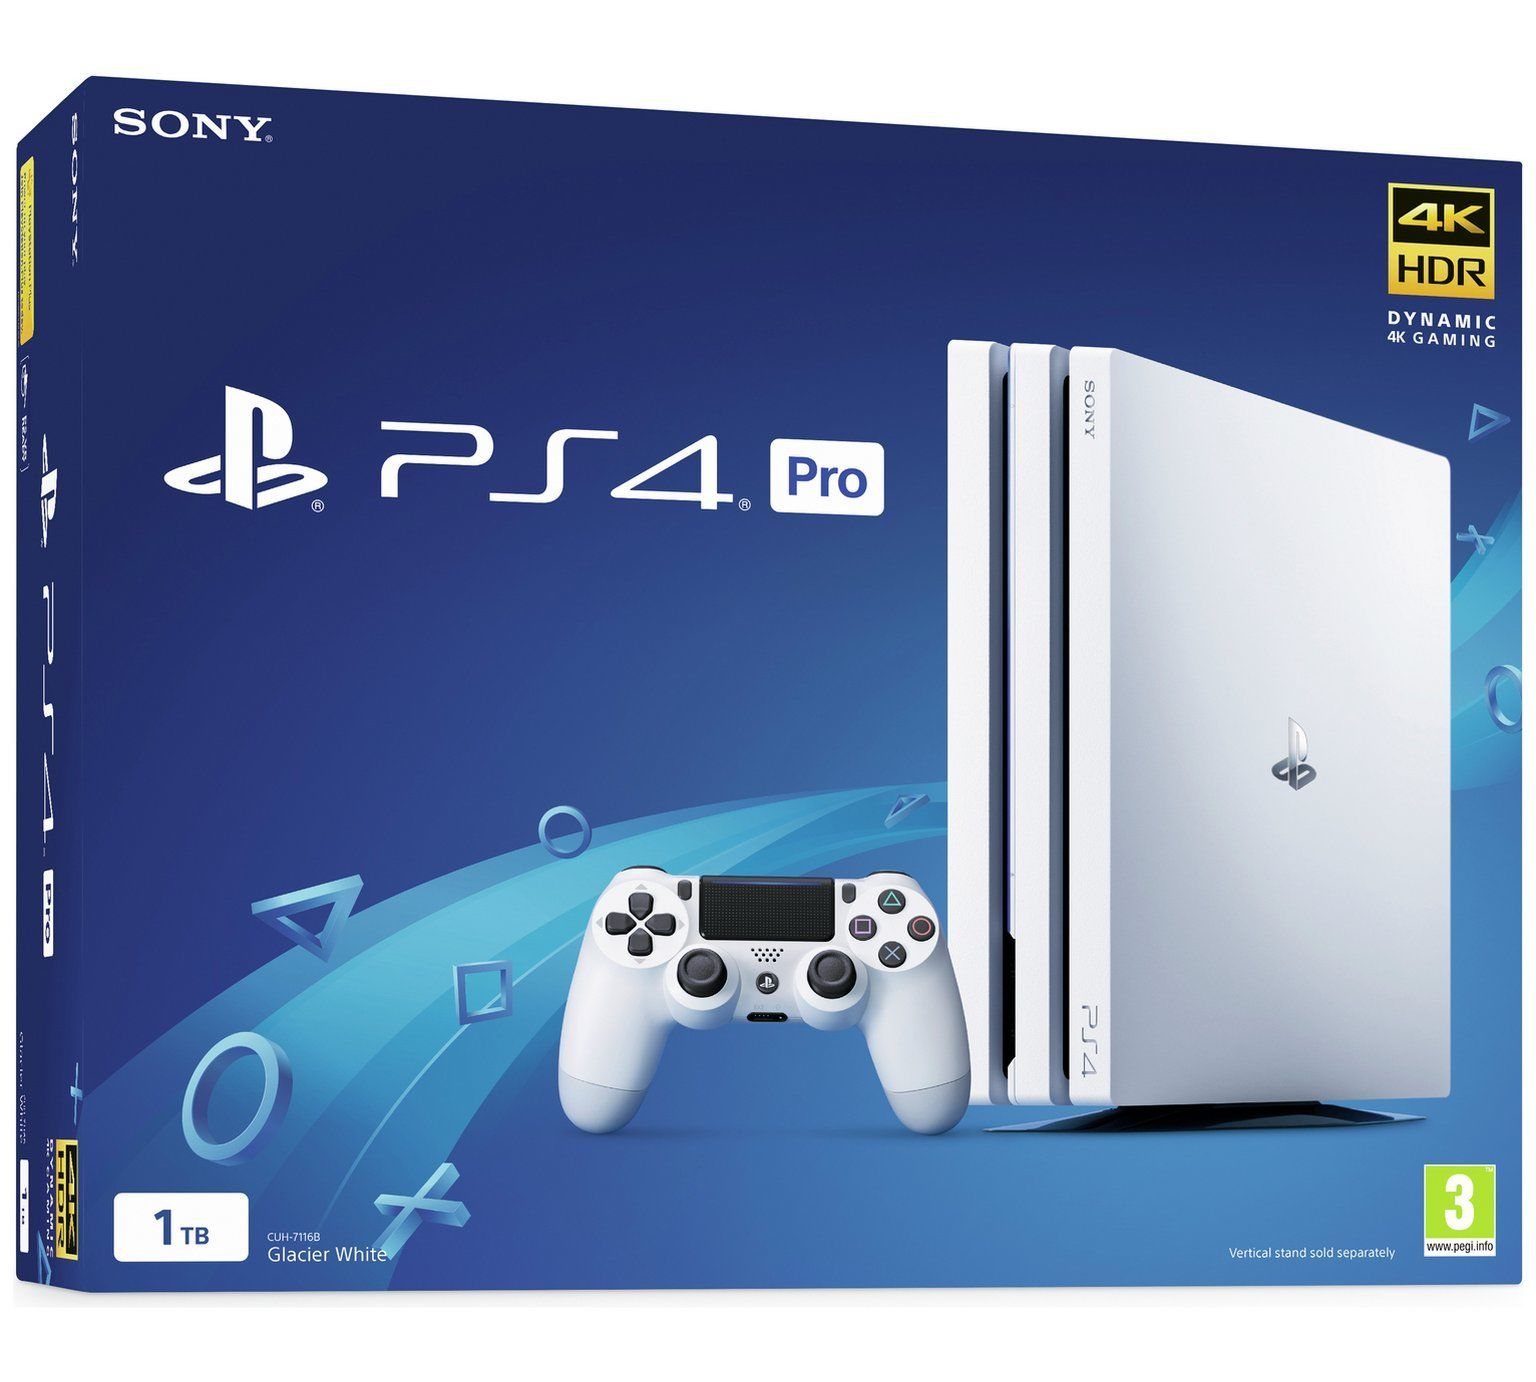 Console Playstation 4 Pro 4K - 1 Terabyte - Branco (2 Controles)